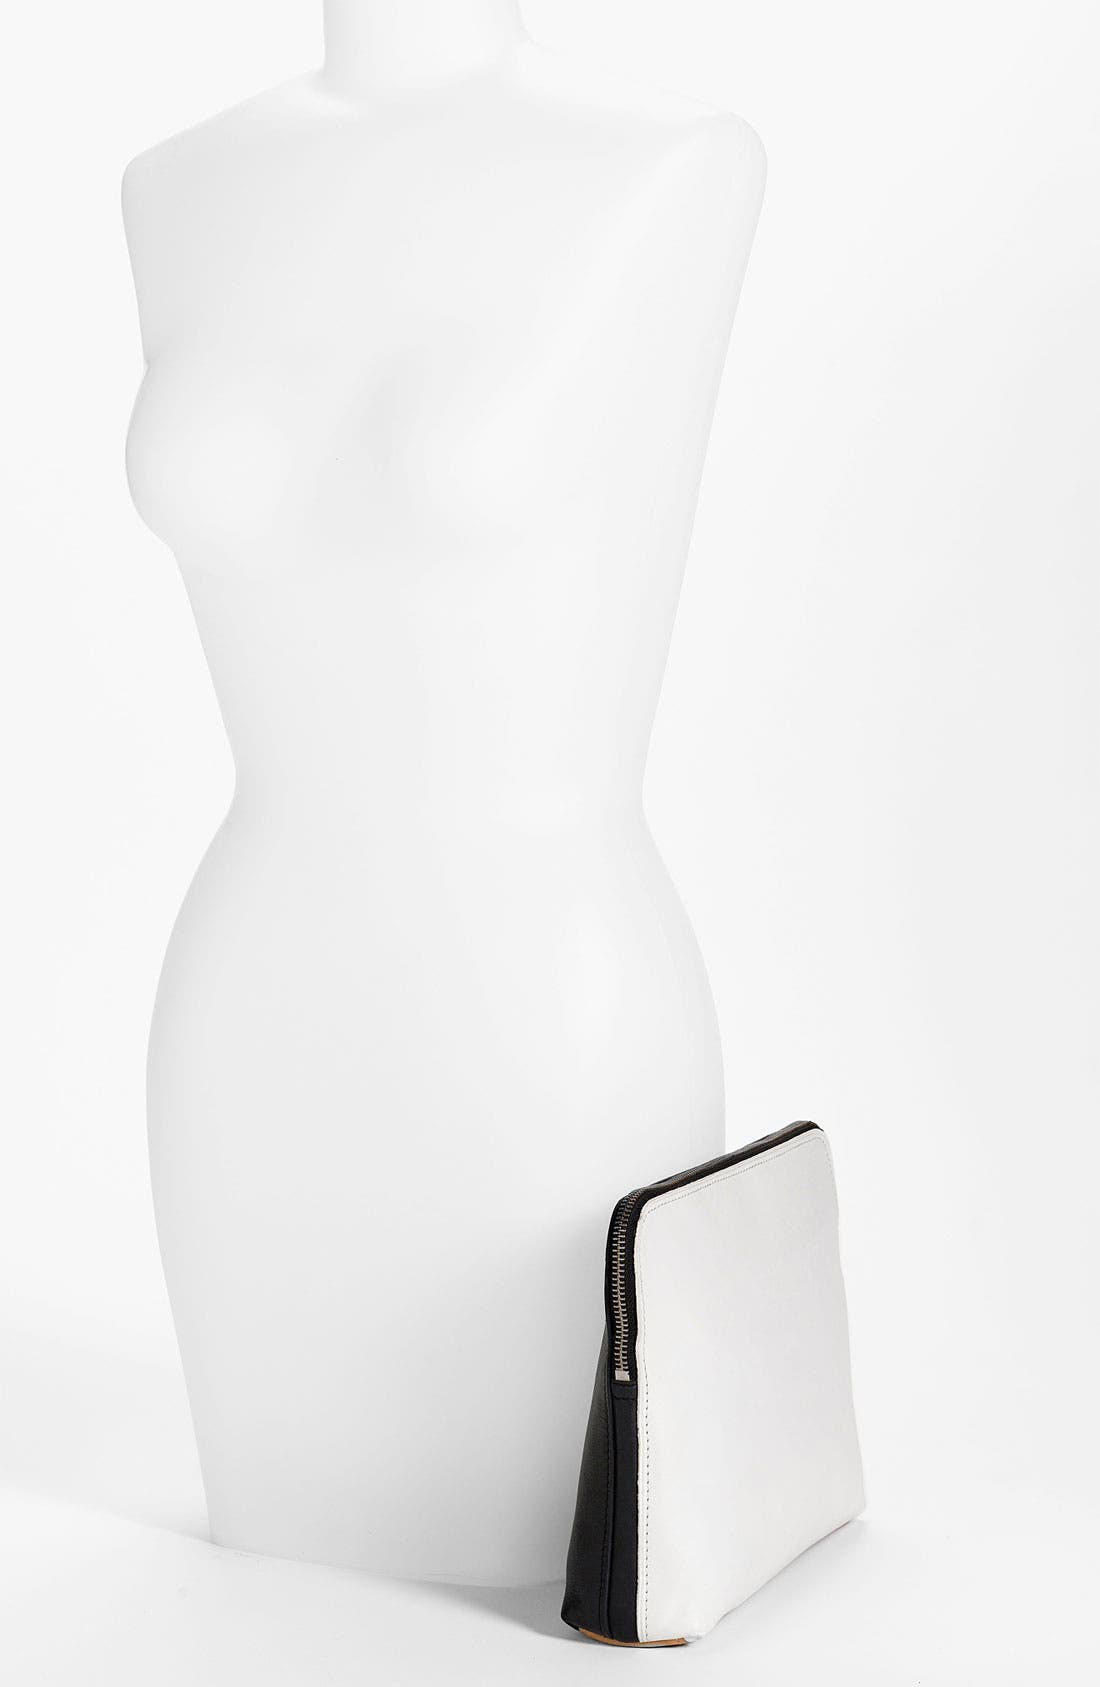 Alternate Image 2  - 3.1 Phillip Lim '31 Minute' Leather Bag